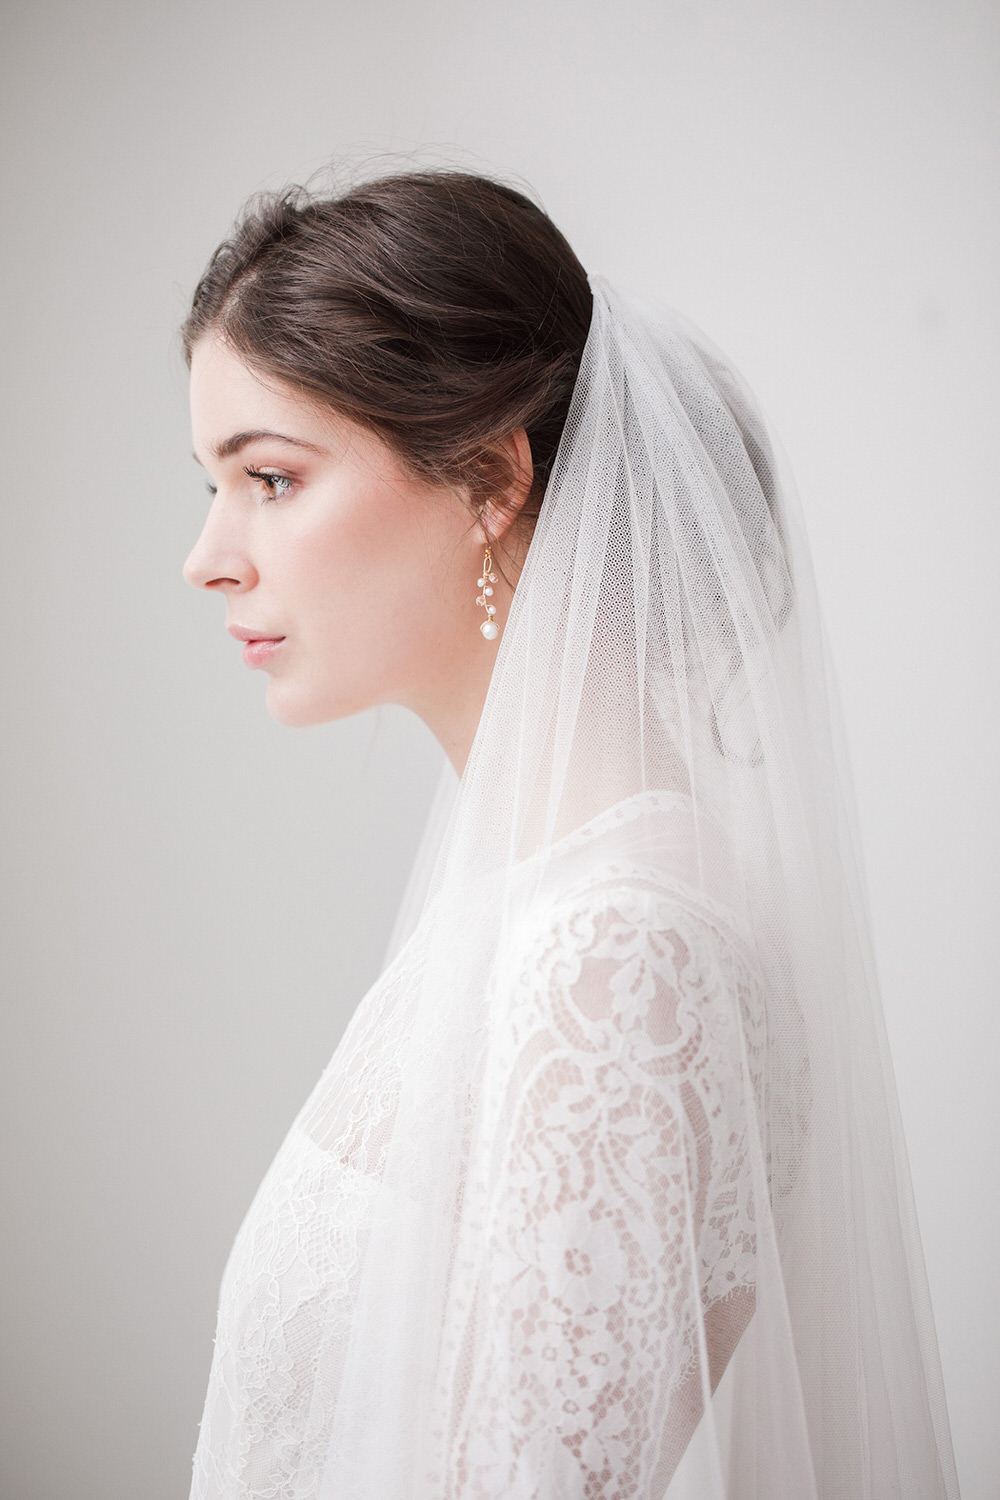 A Guide To Wedding Veils - ROCK MY WEDDING | UK WEDDING BLOG & DIRECTORY